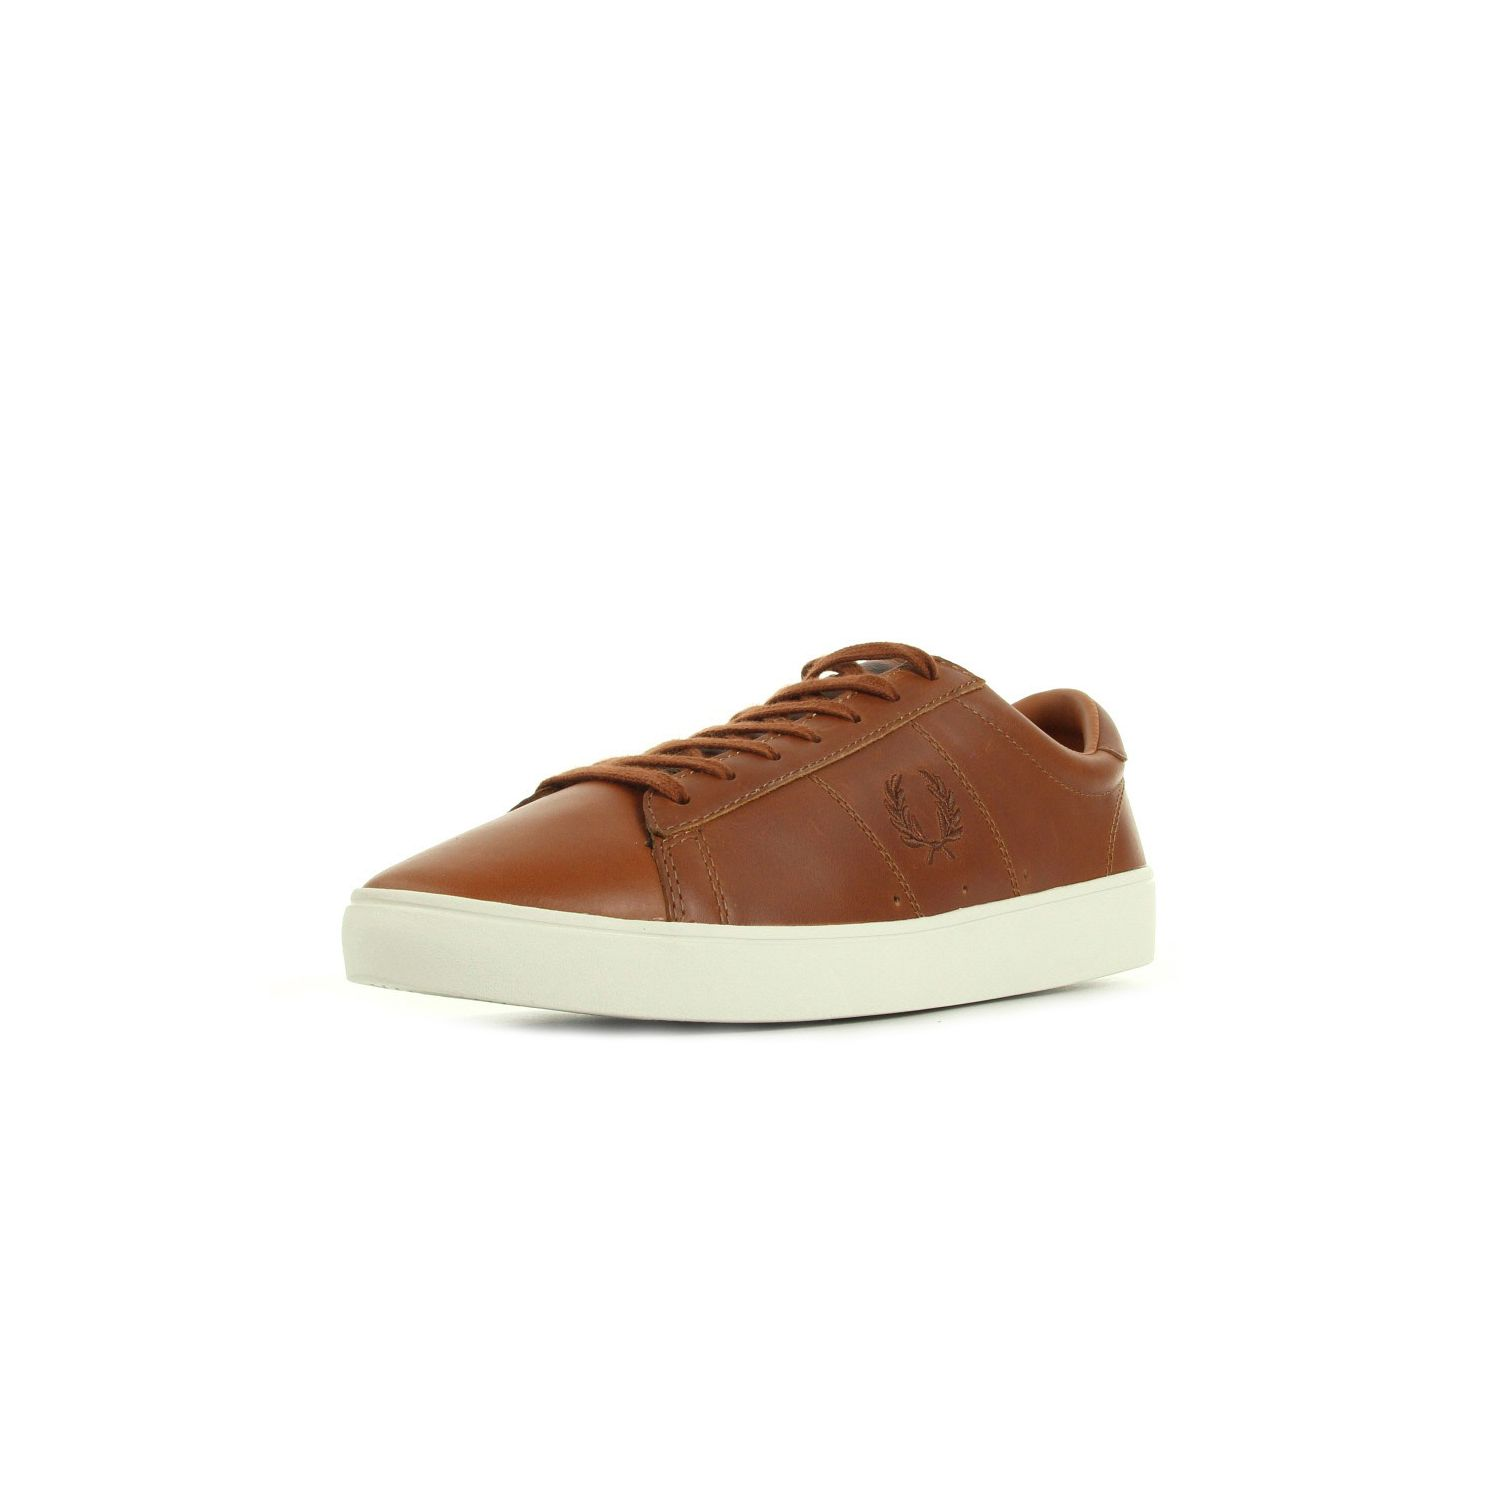 Fred Perry - Spencer Leather Tan Marron - 45 - pas cher Achat ... 8bfbec88caab